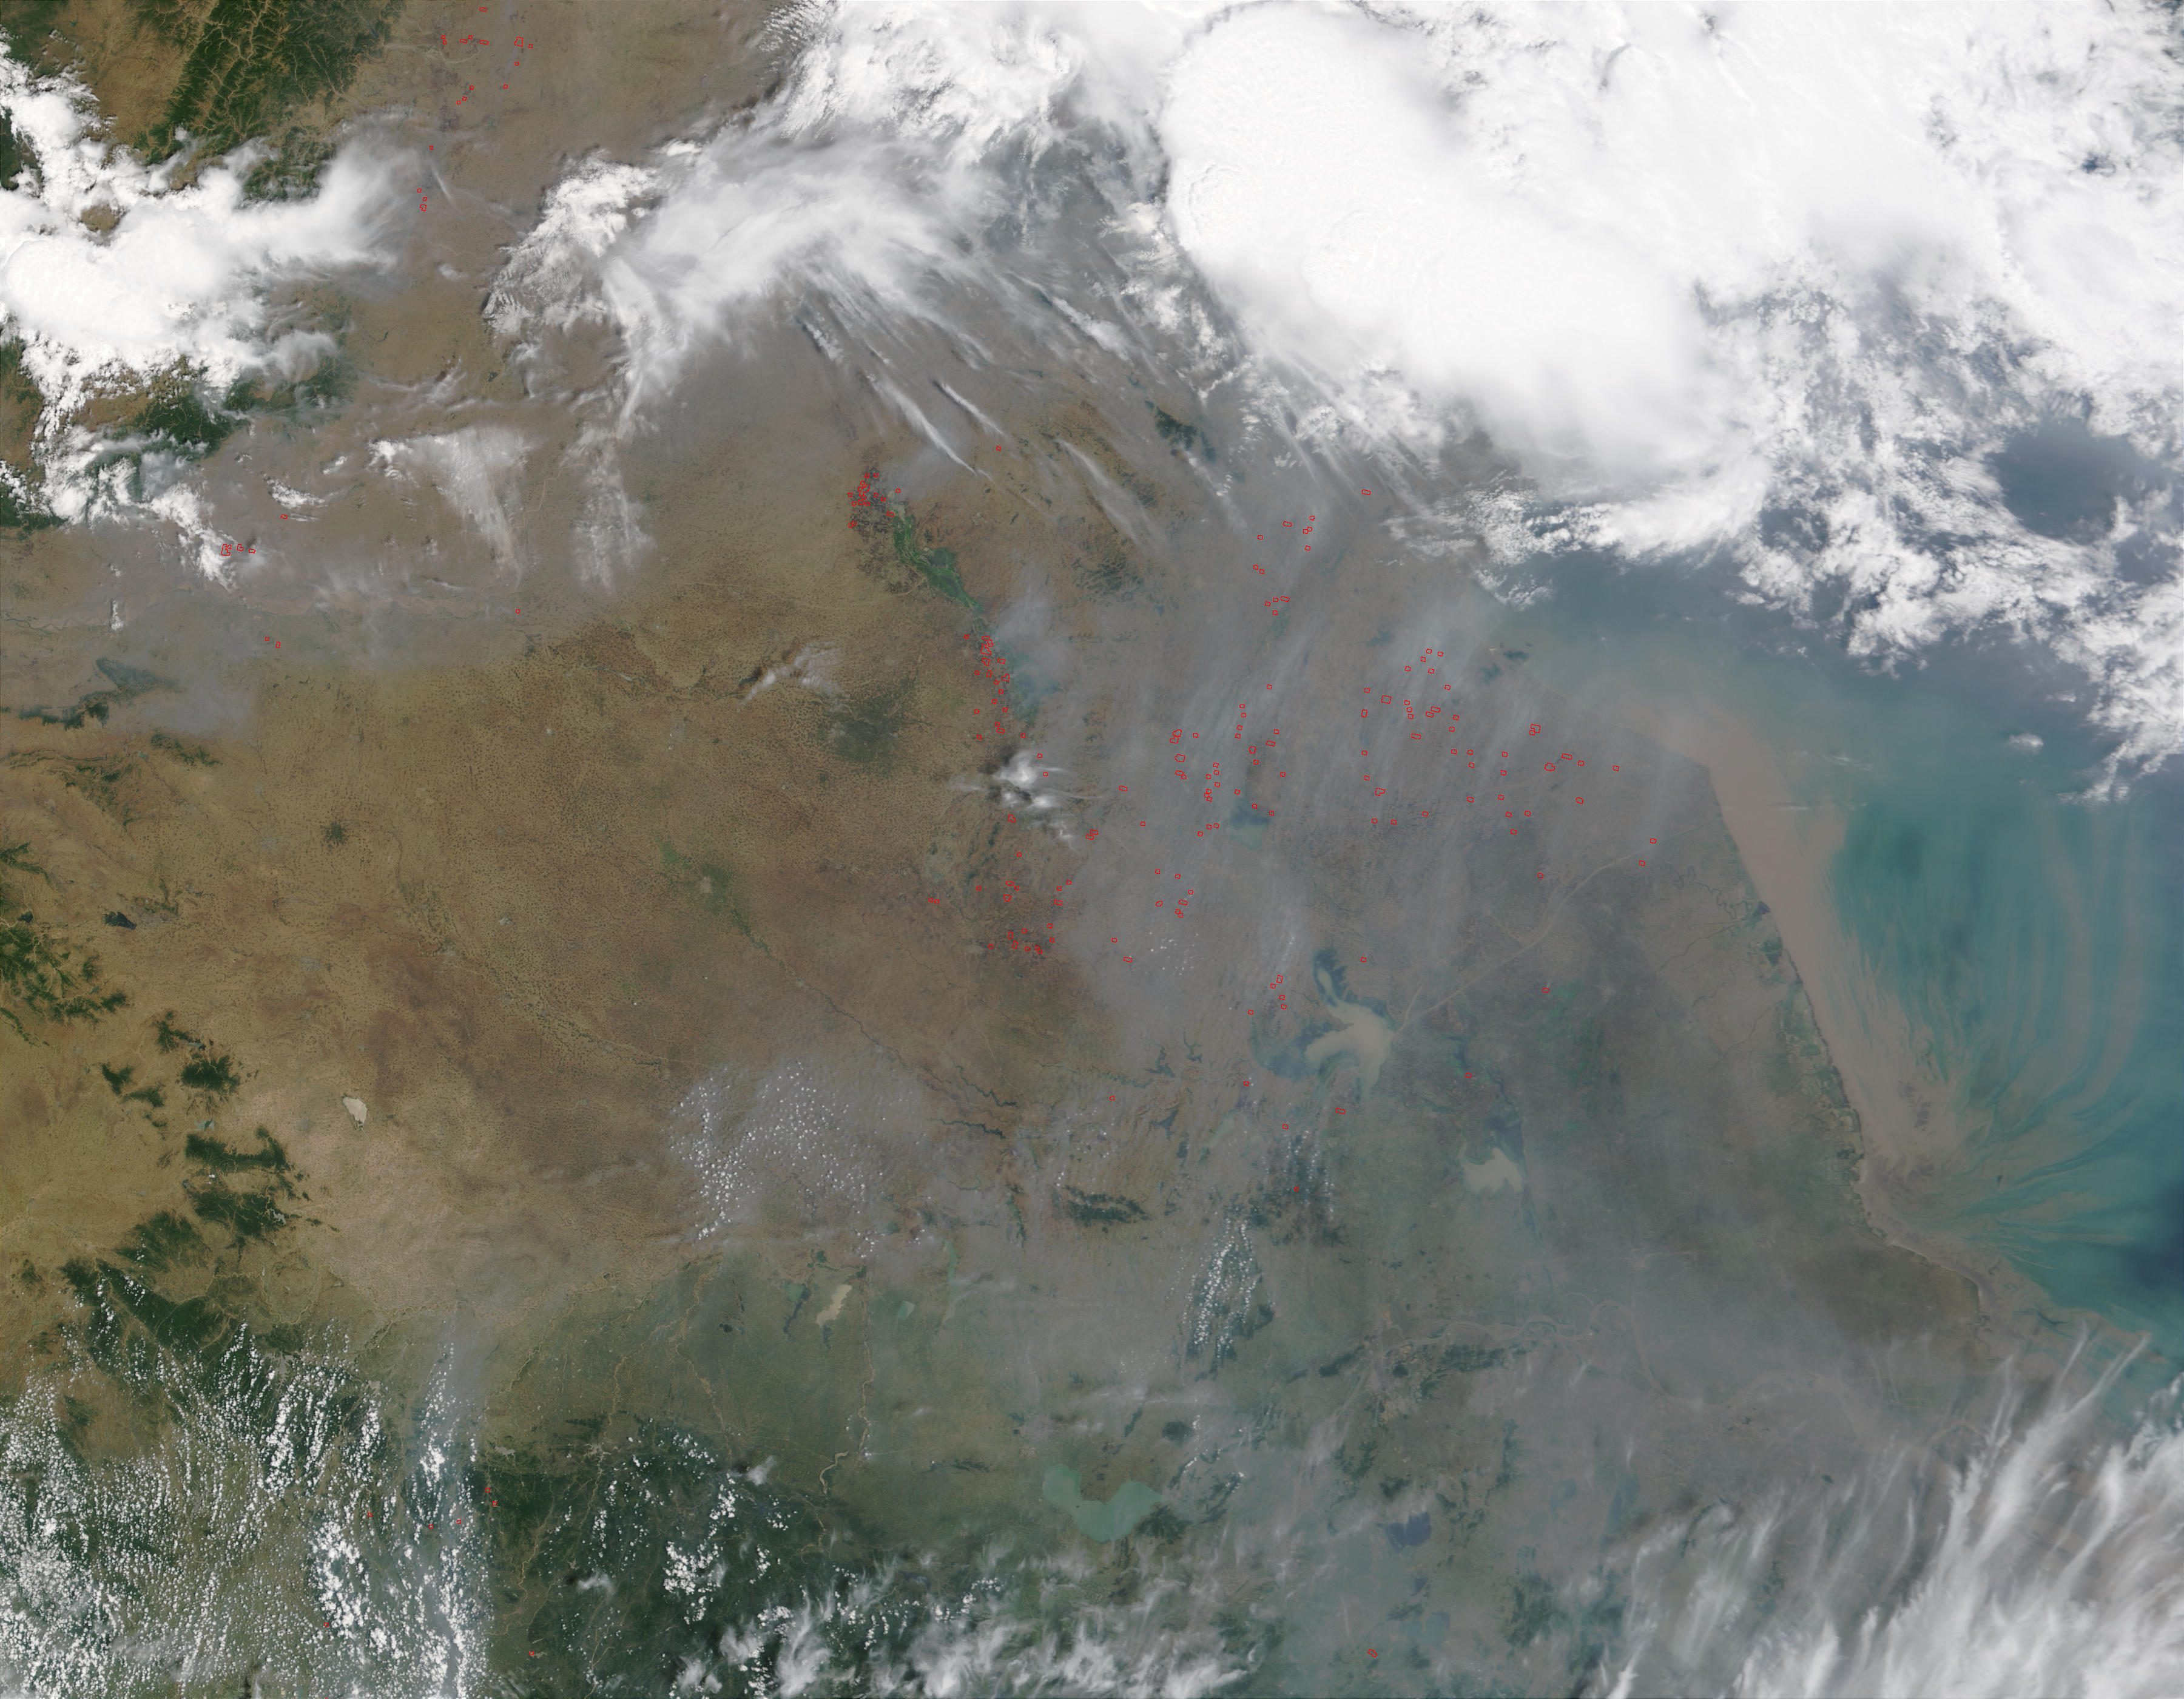 Fires in China